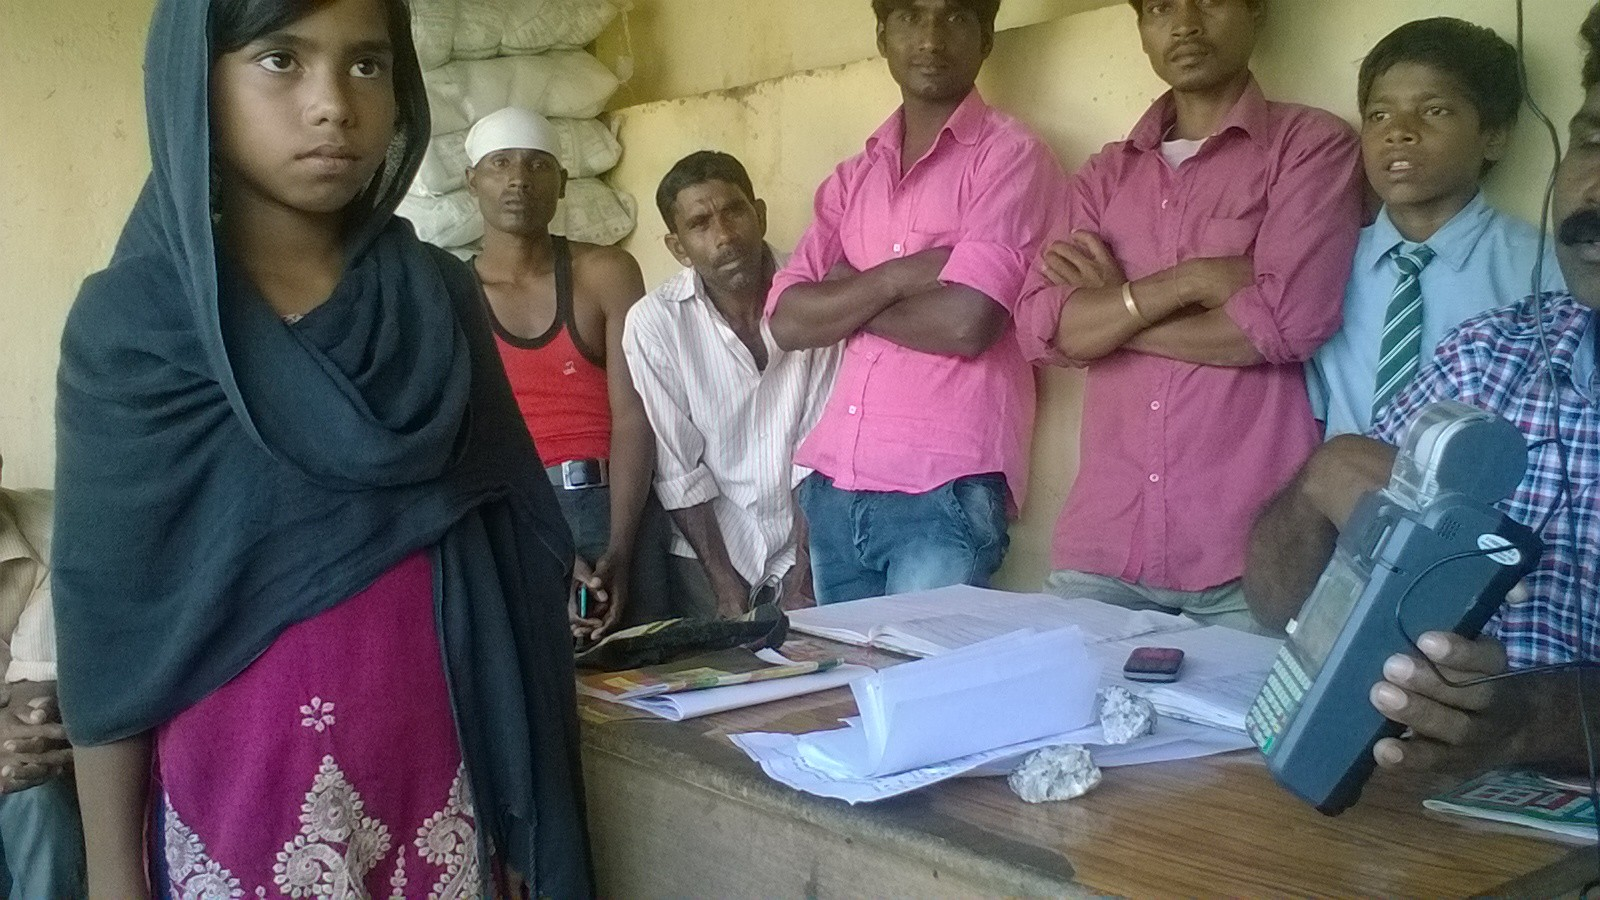 Nazia Parveen missed school and was at the ration shop in Hurhuri, Ratu block, for biometric authentication so her family could get their monthly ration entitlements.